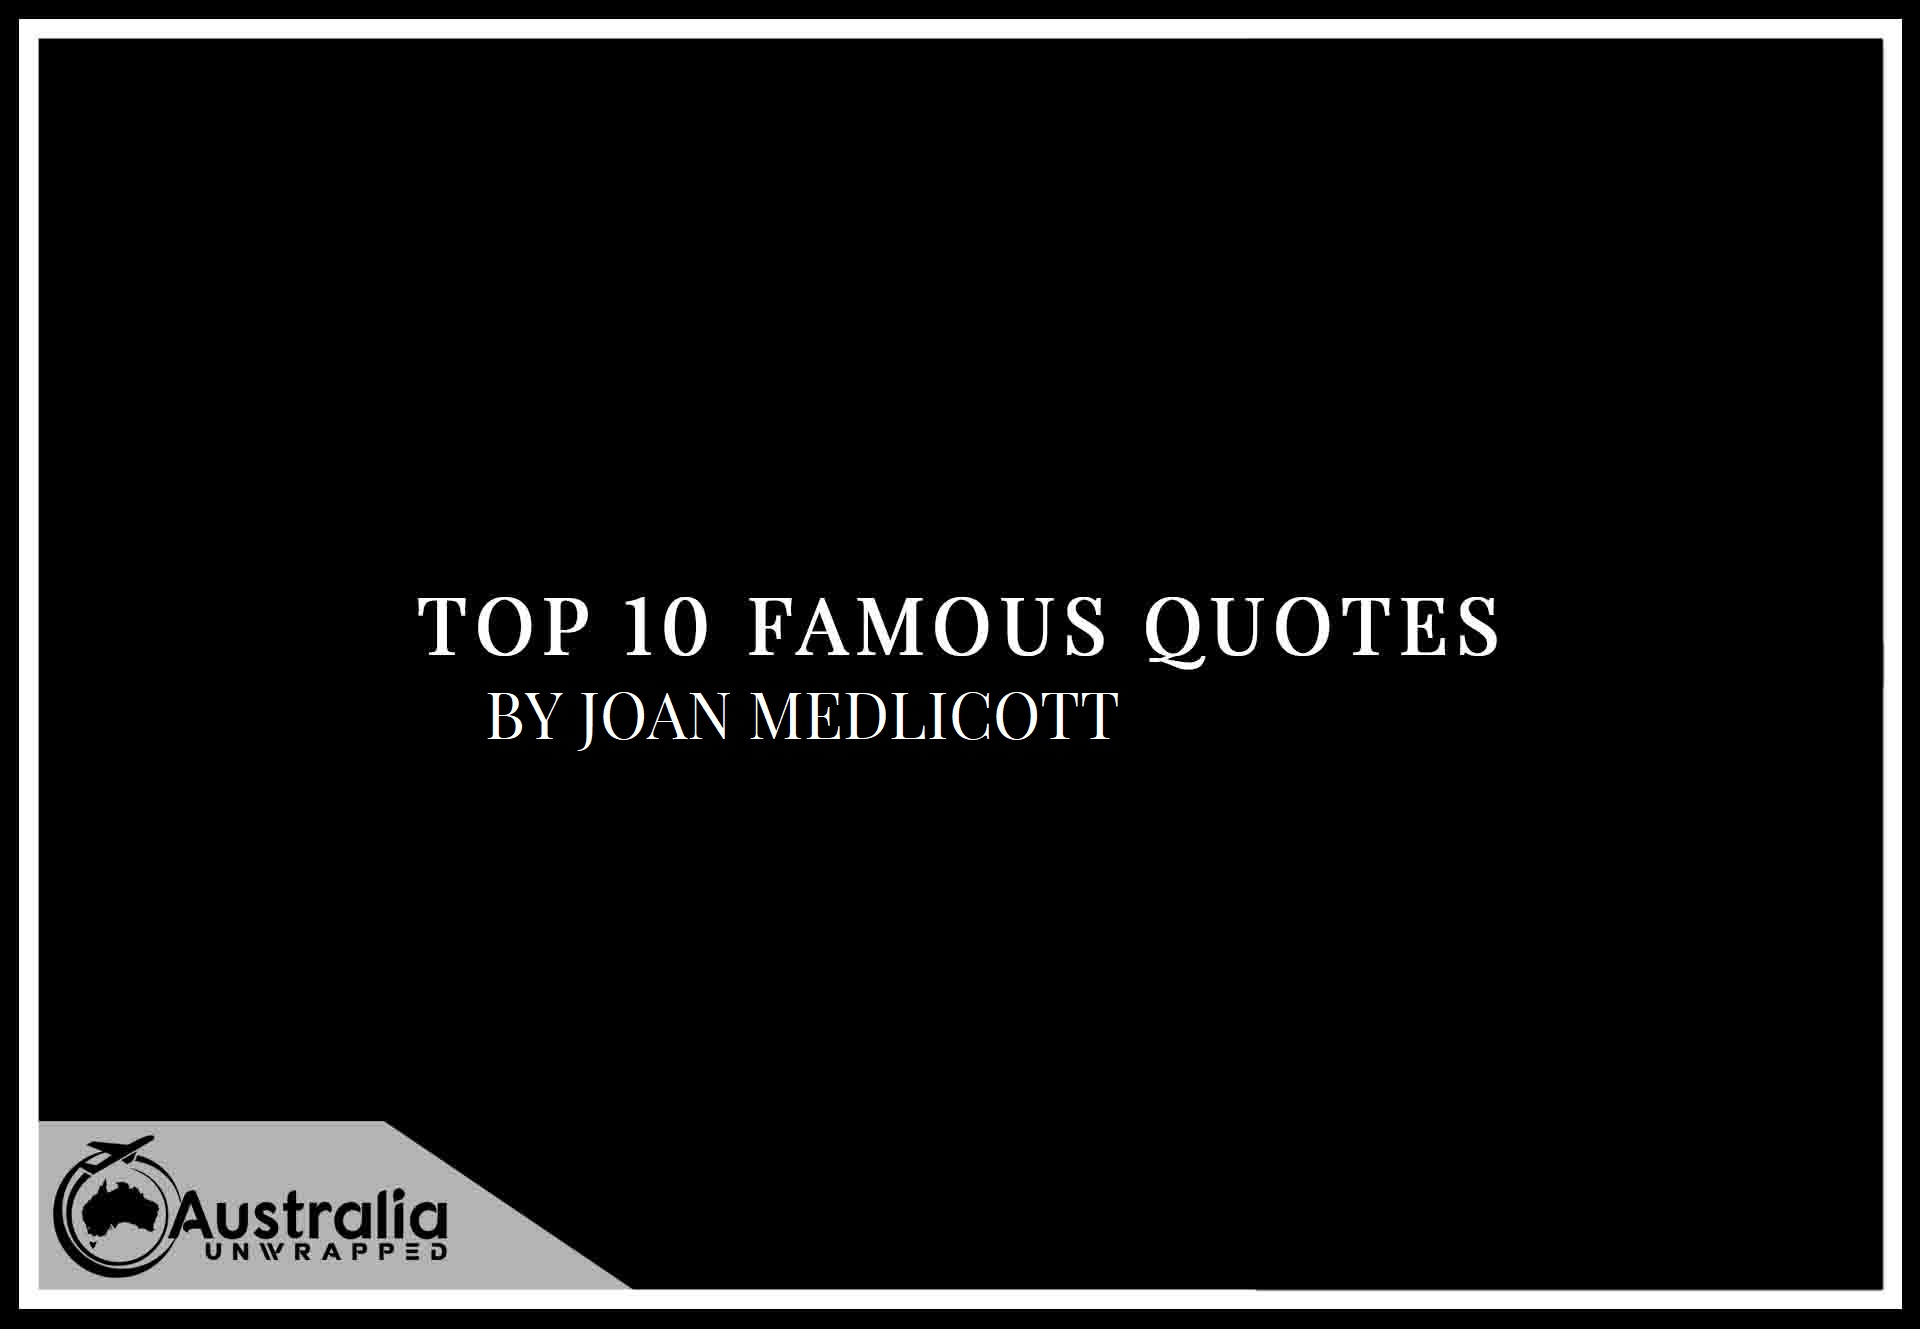 Top 10 Famous Quotes by Author Joan Medlicott